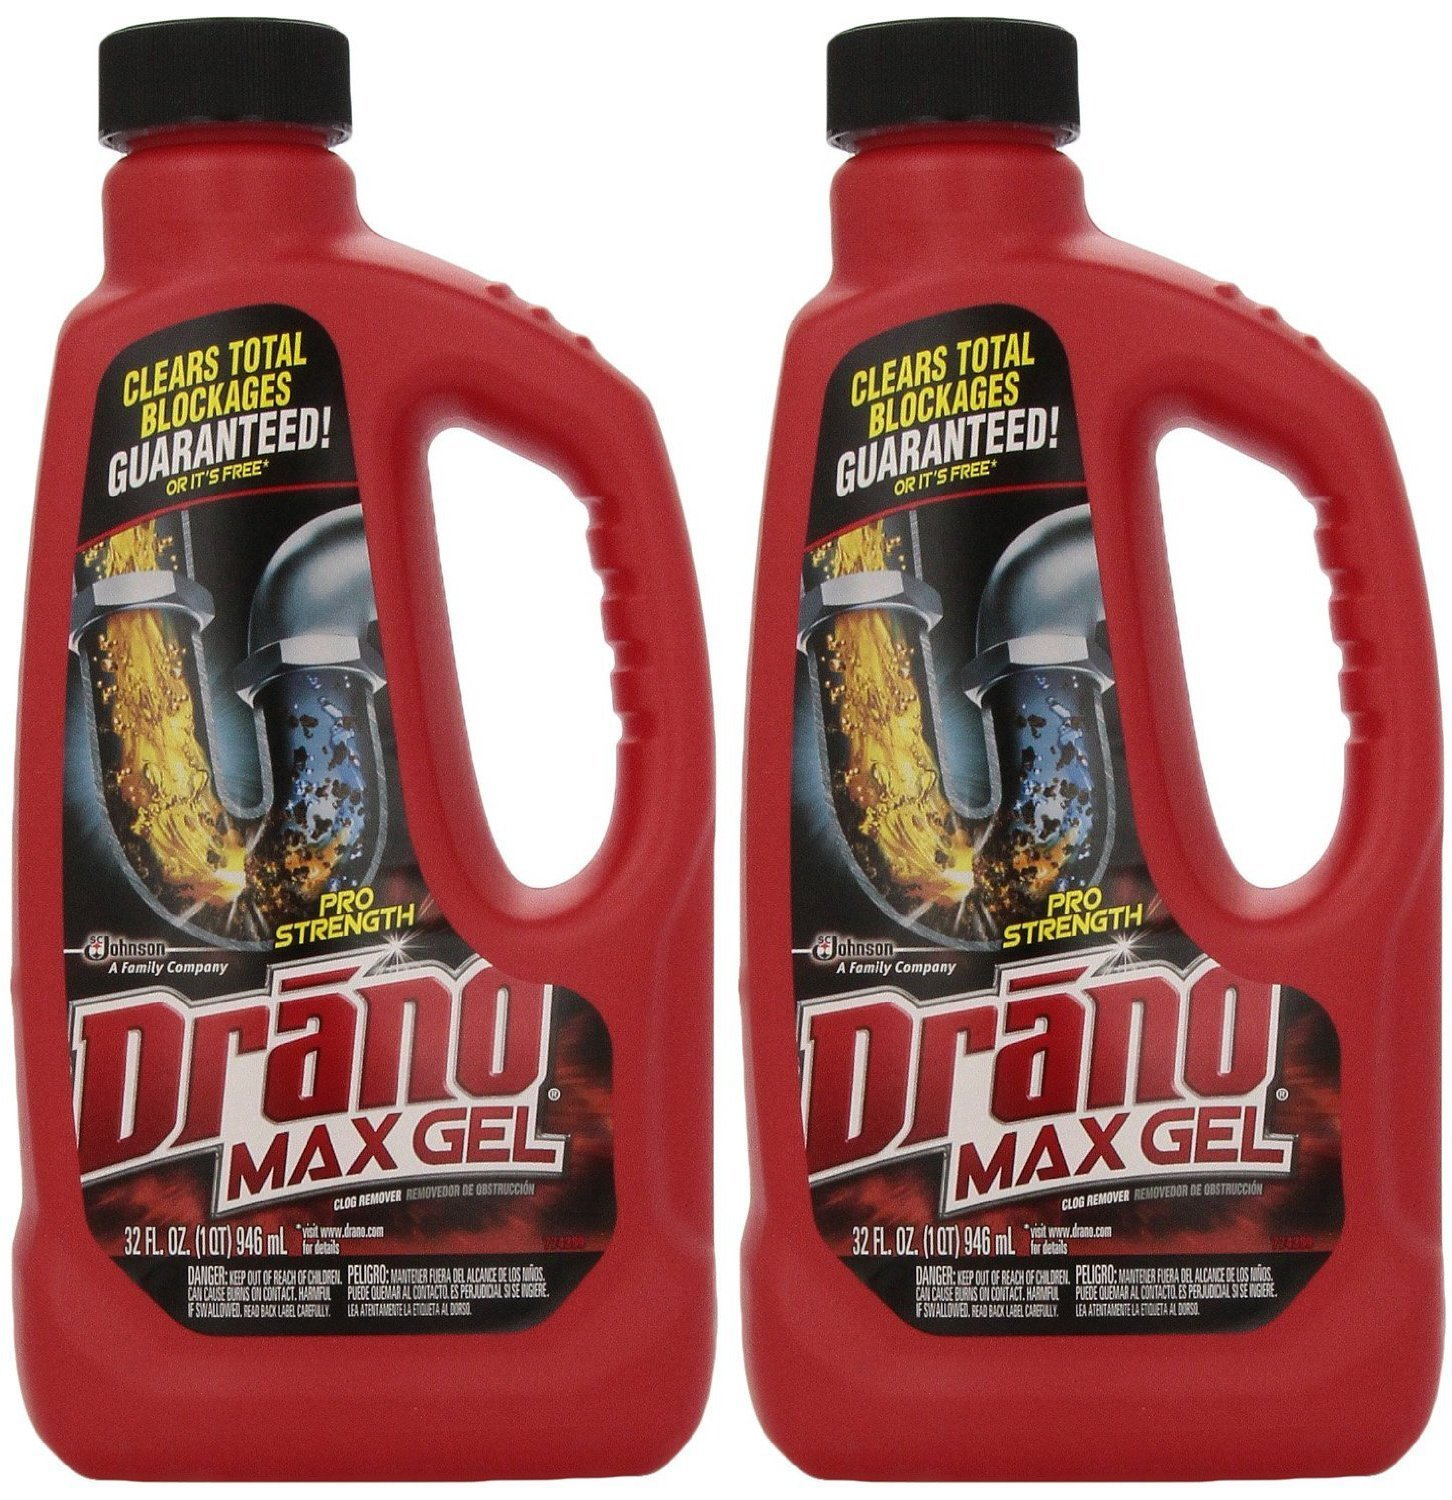 5 Best Drain Cleaner Reviews And Ultimate Buyer's Guide